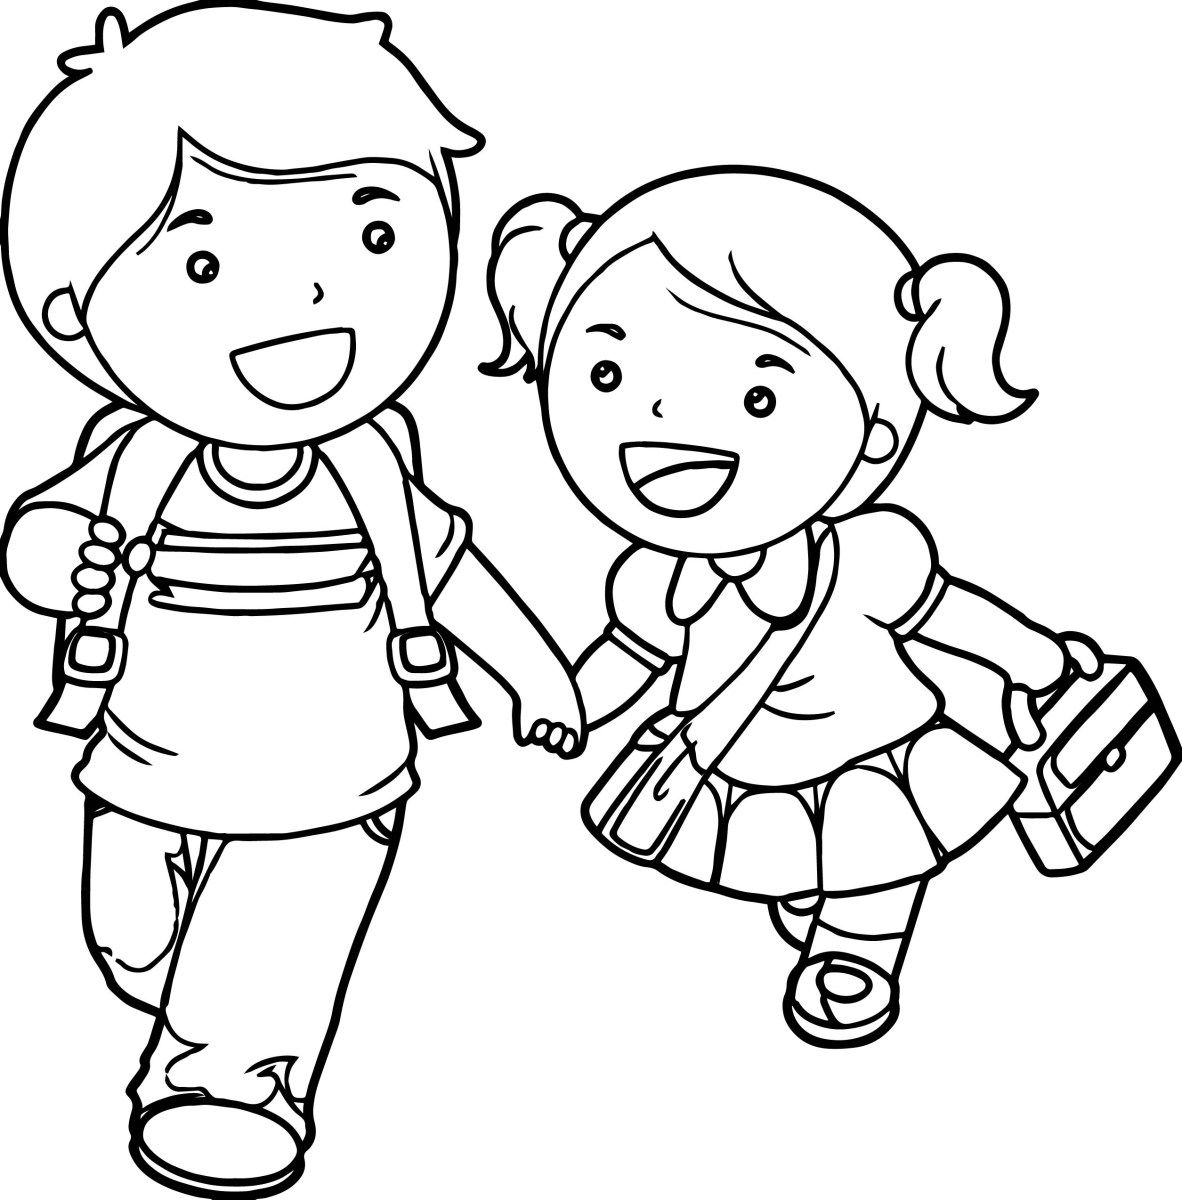 Boy And Girl Coloring Pages Boy And Girl Lets Go School Coloring Page Wecoloringpage Birijus Com Coloring Pages For Girls Coloring Pages For Boys Sunday School Coloring Pages